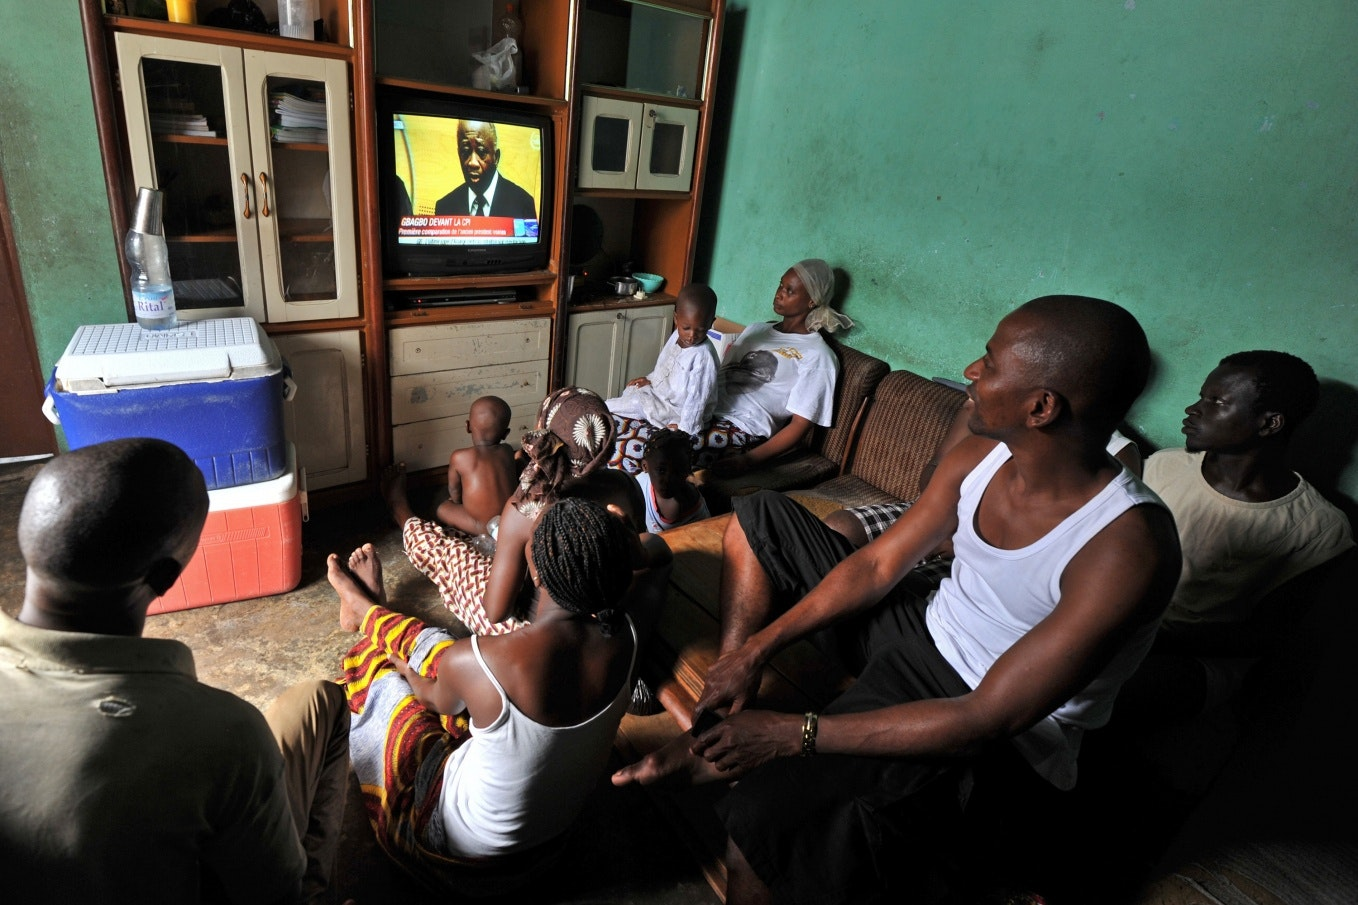 A family watching TV news